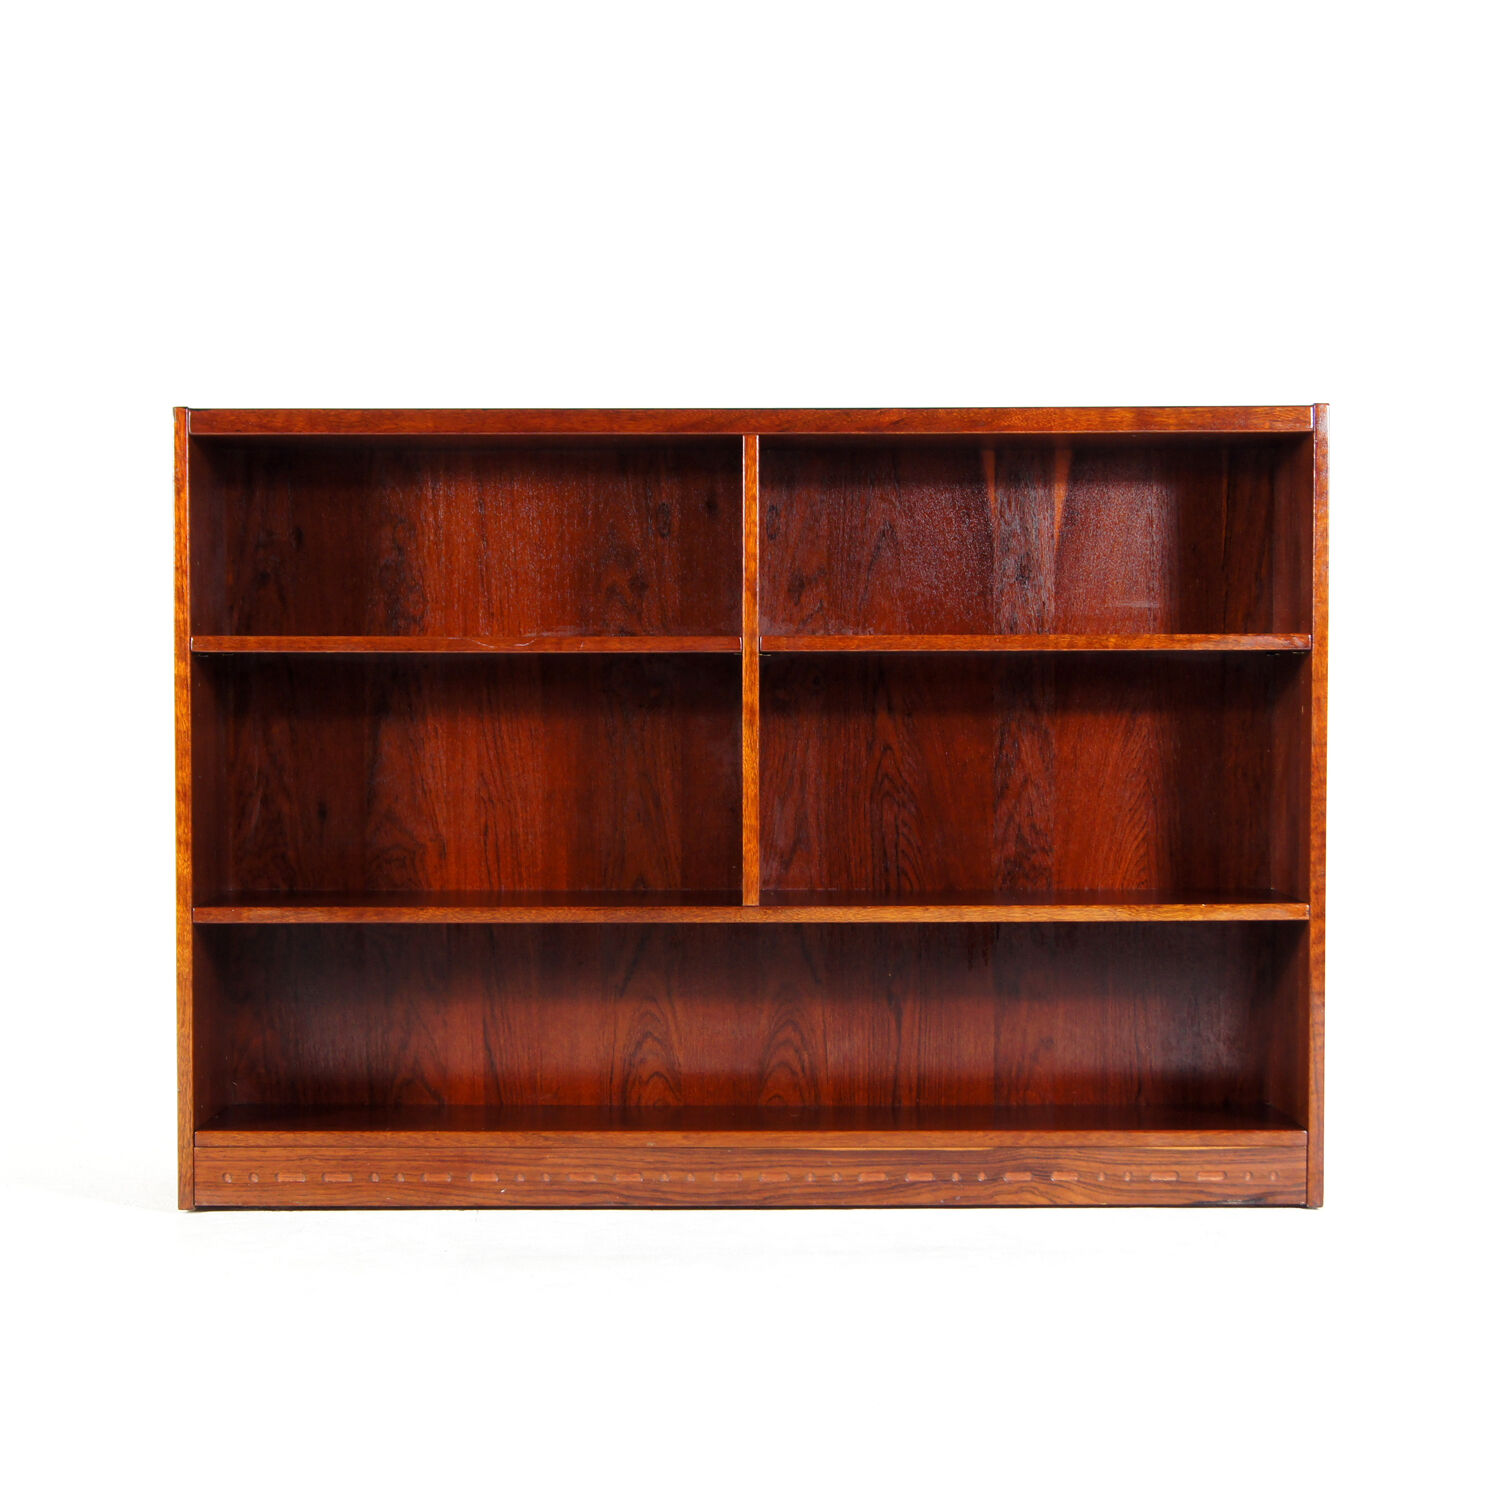 Retro Vintage Danish Modern Rosewood Display Cabinet Bookcase Book Shelves 1970s